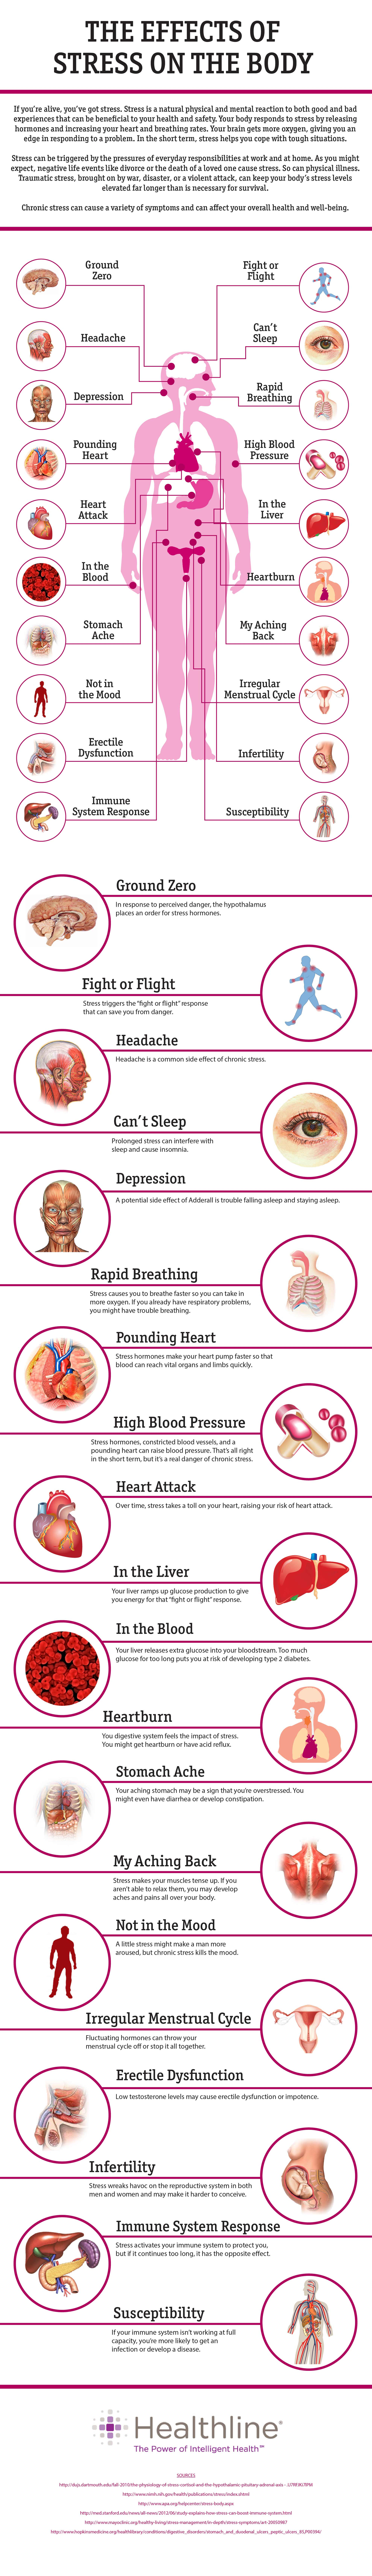 The Effects of Stress on the Body